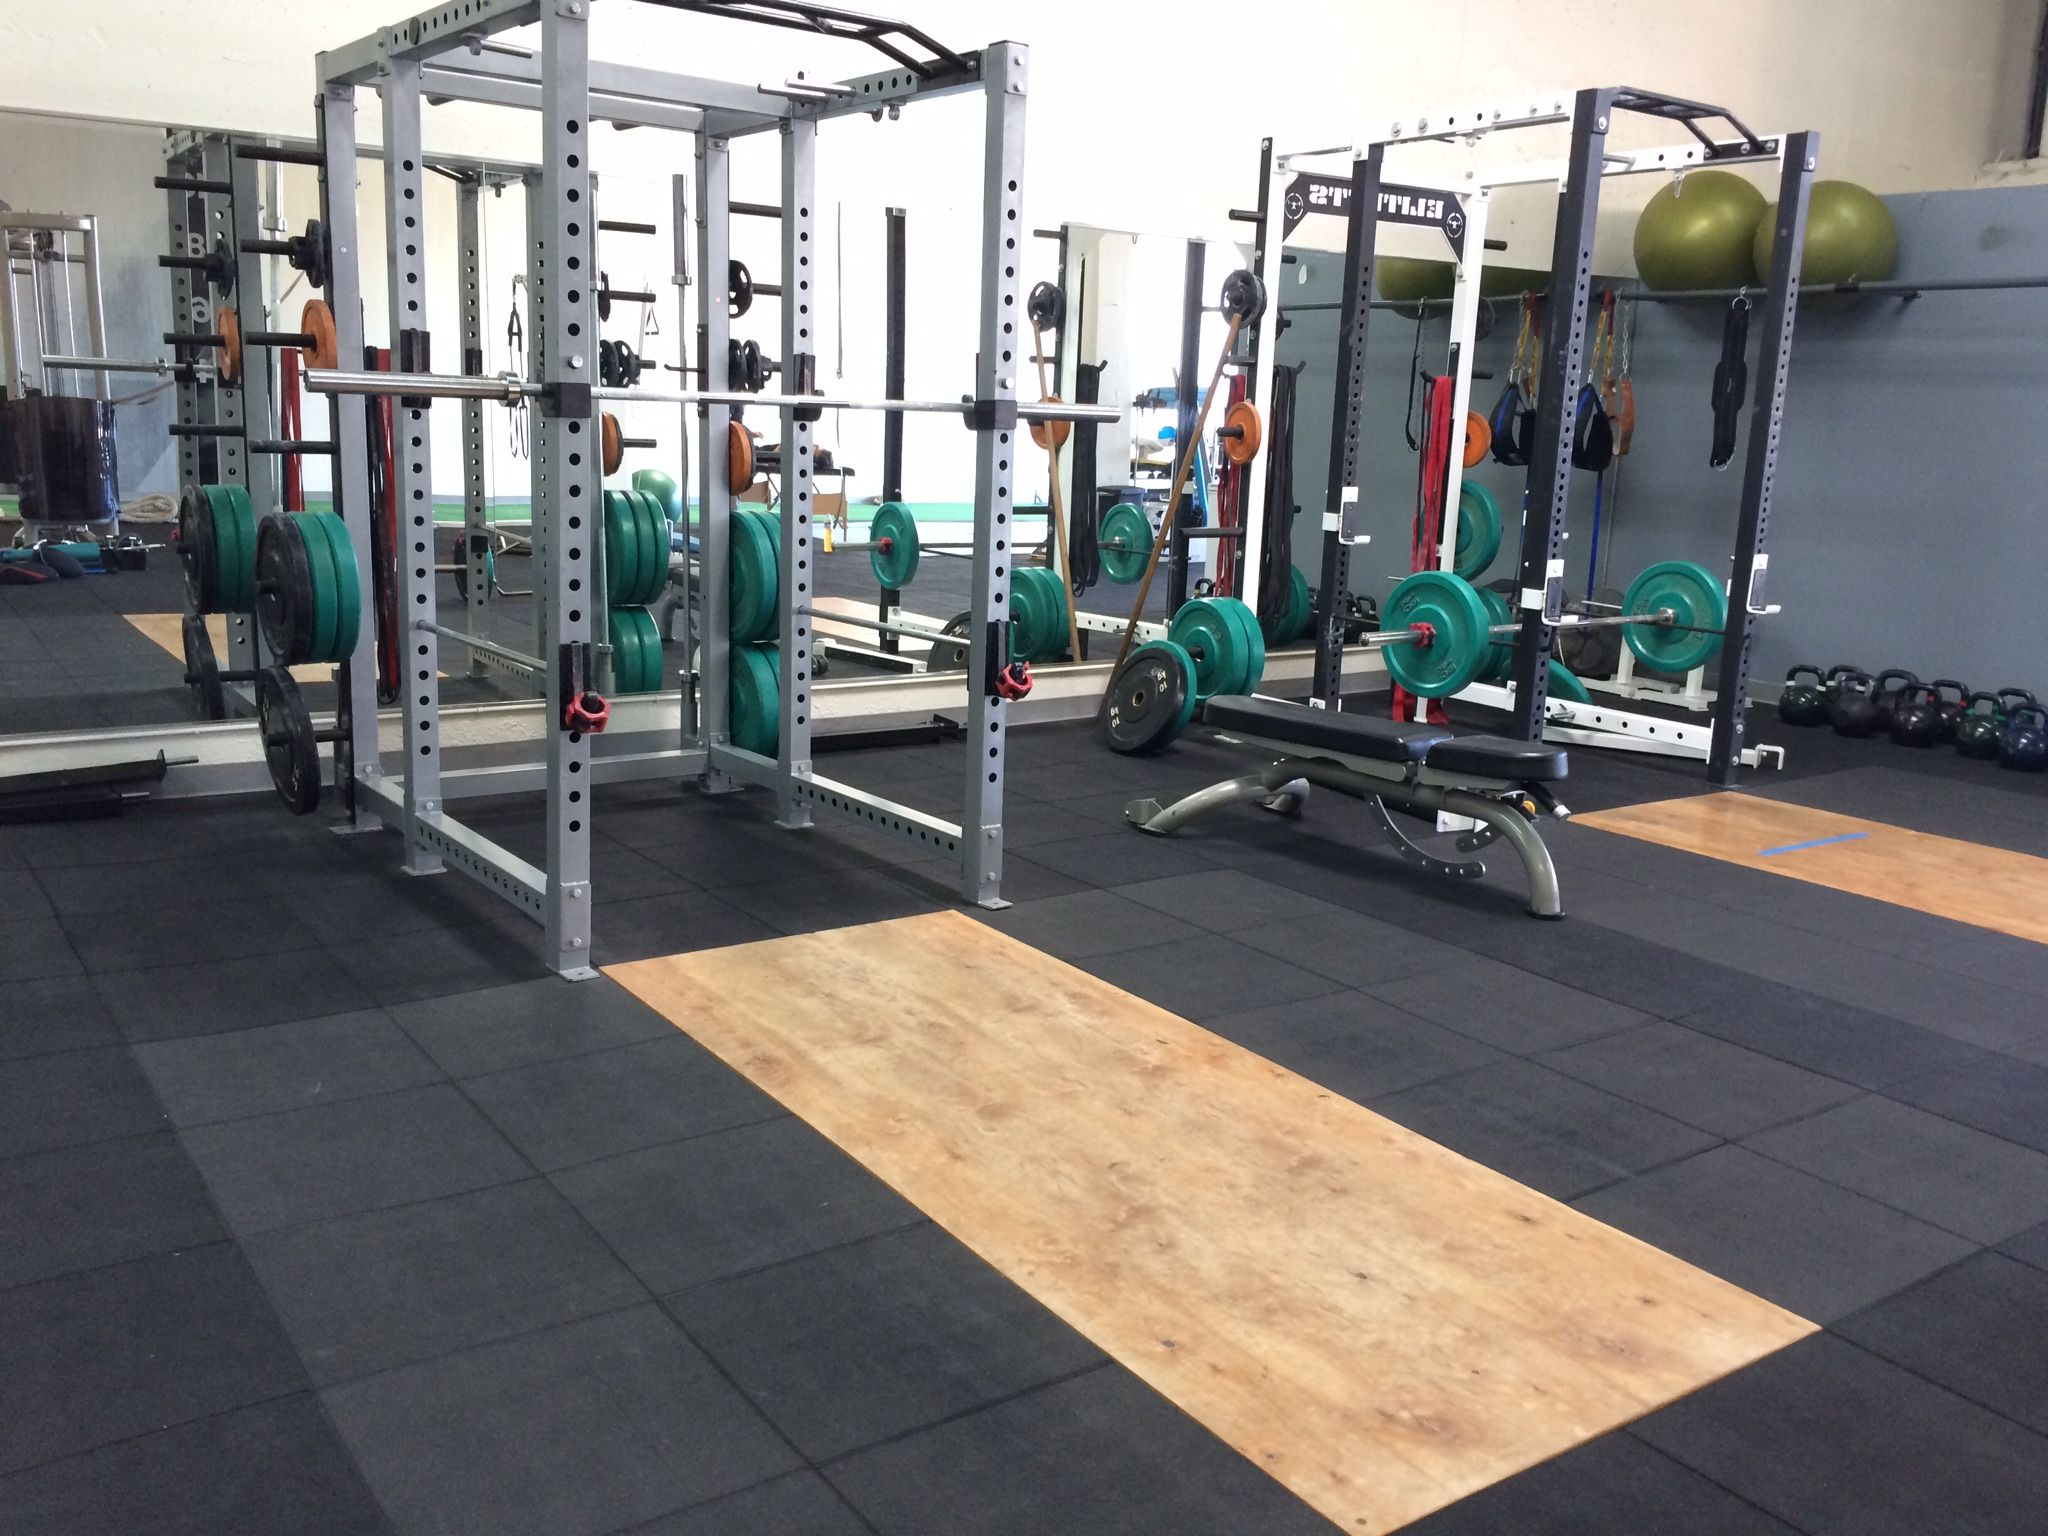 UKSF Olympic Weightlifting Platform — Best Gym Equipment